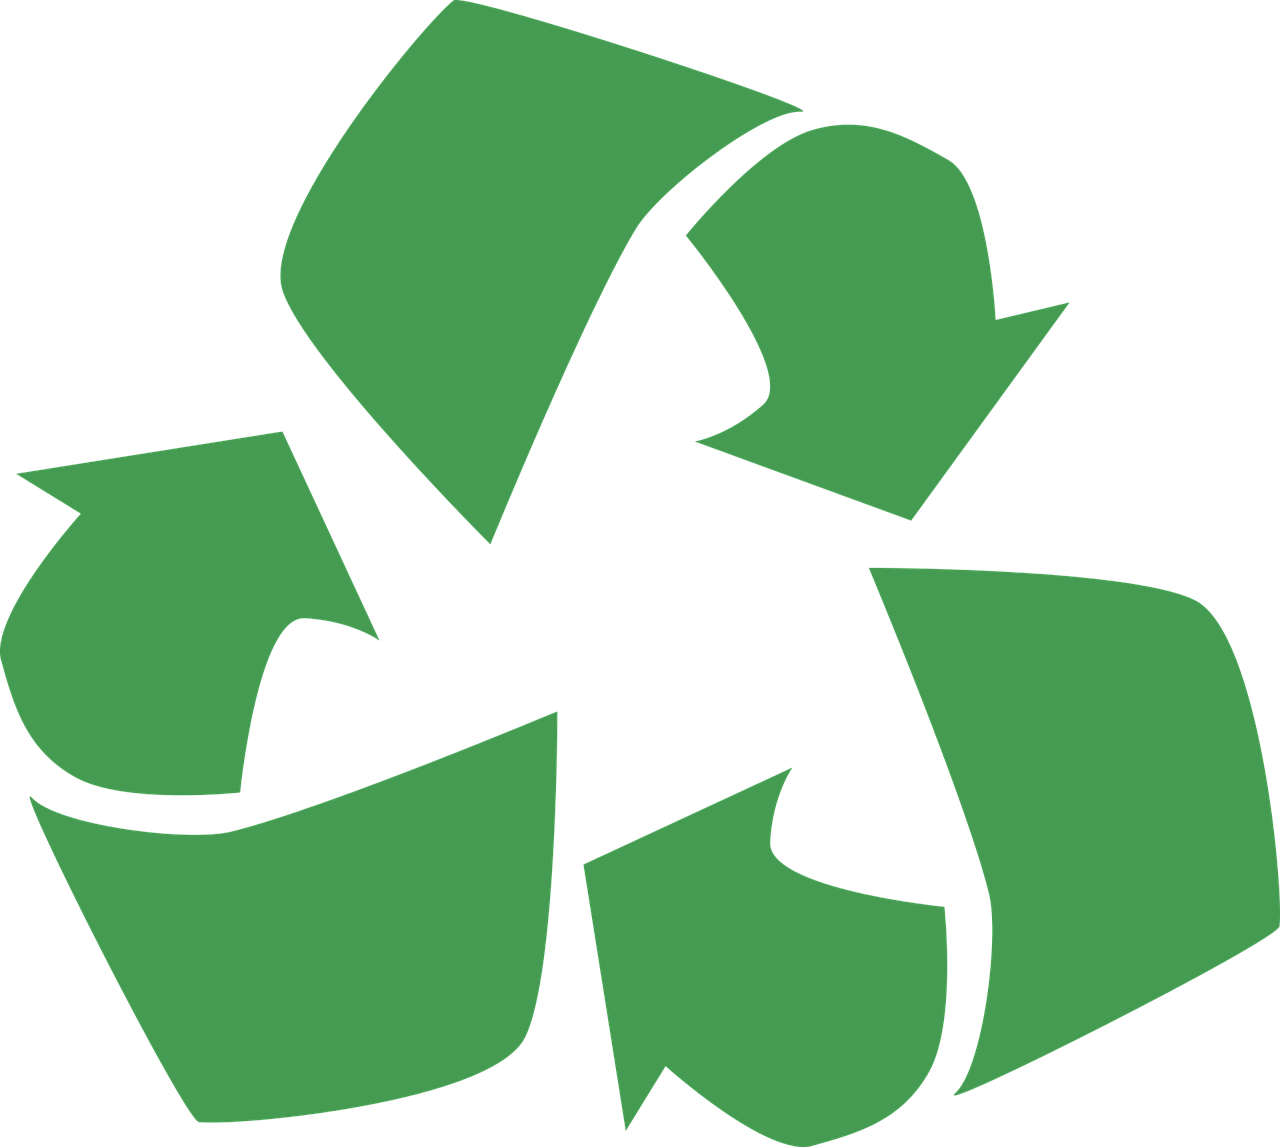 Environment clipart eco friendly. Ubiqus uk badge recycling